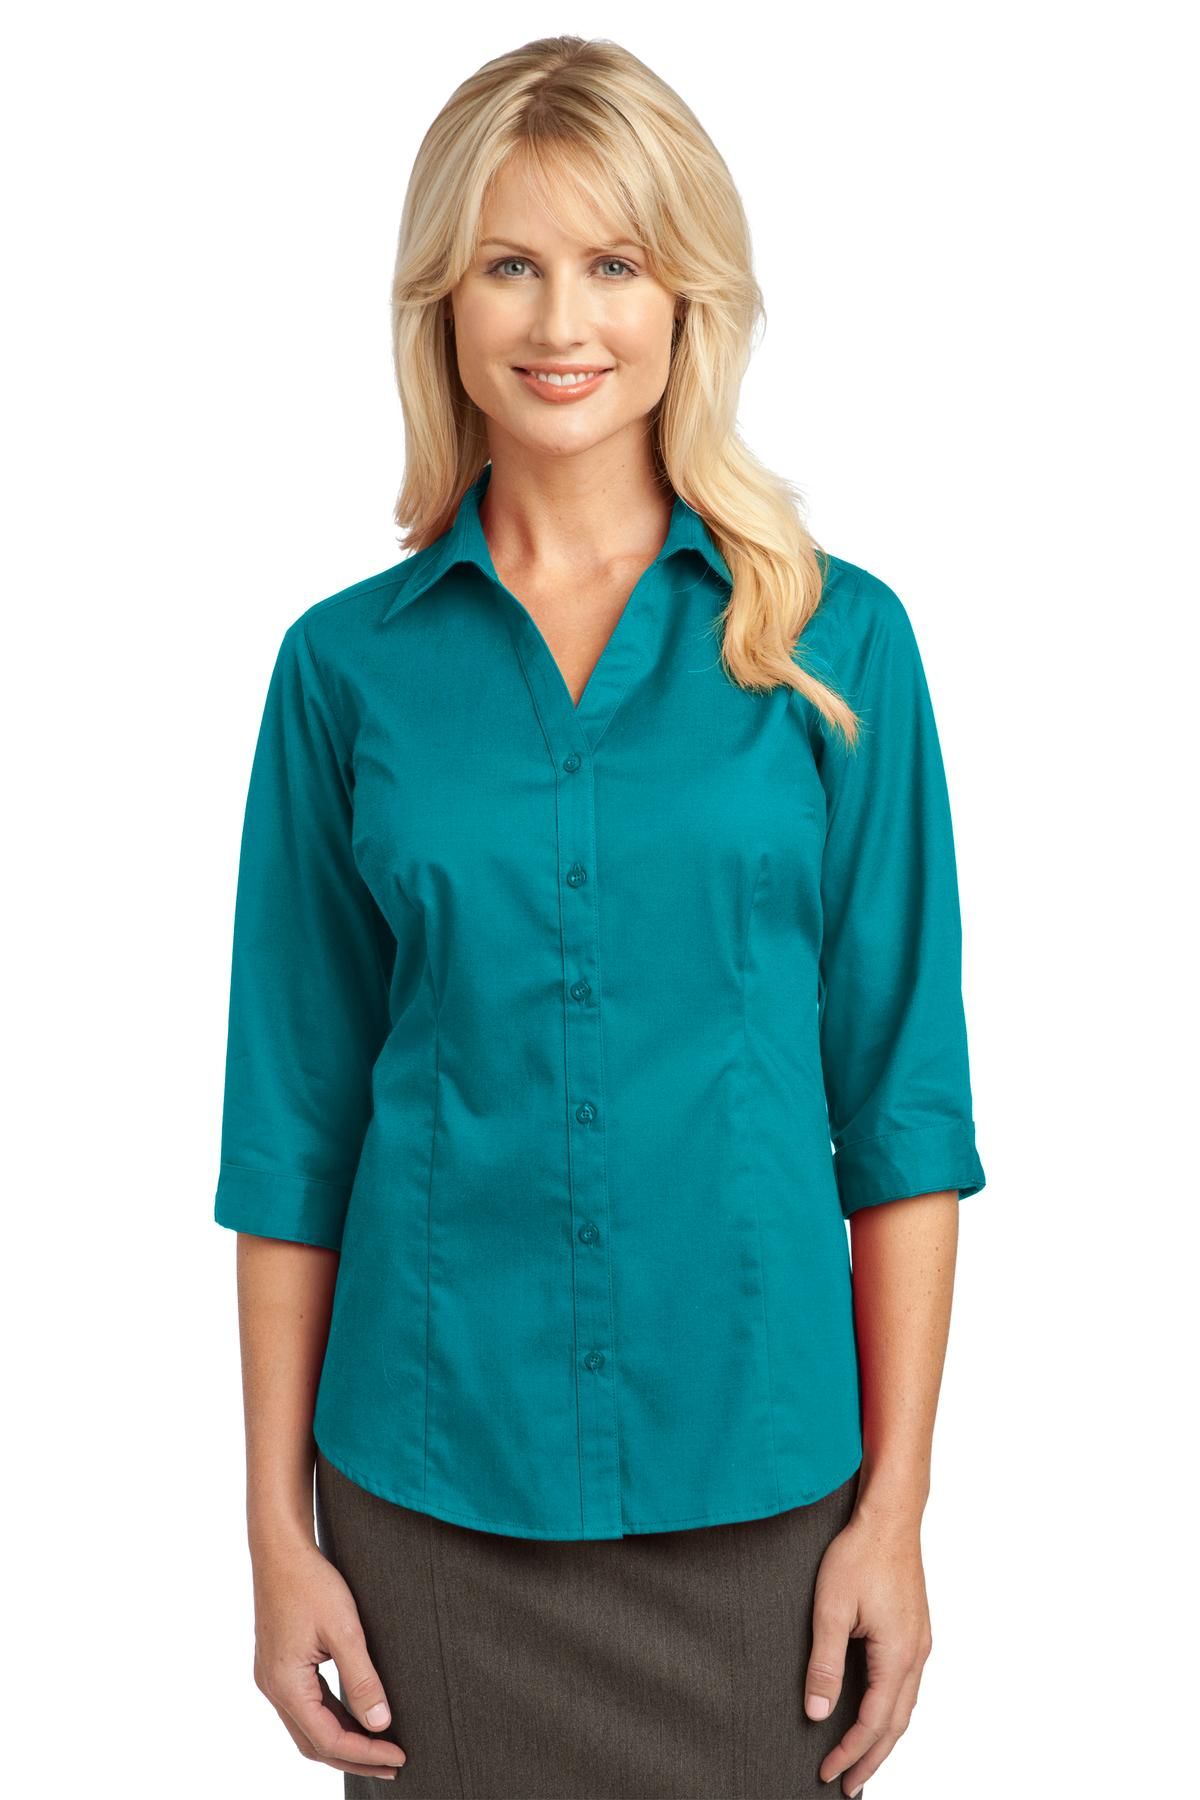 Black Port Authority ® Ladies UV Choice Pique Henley